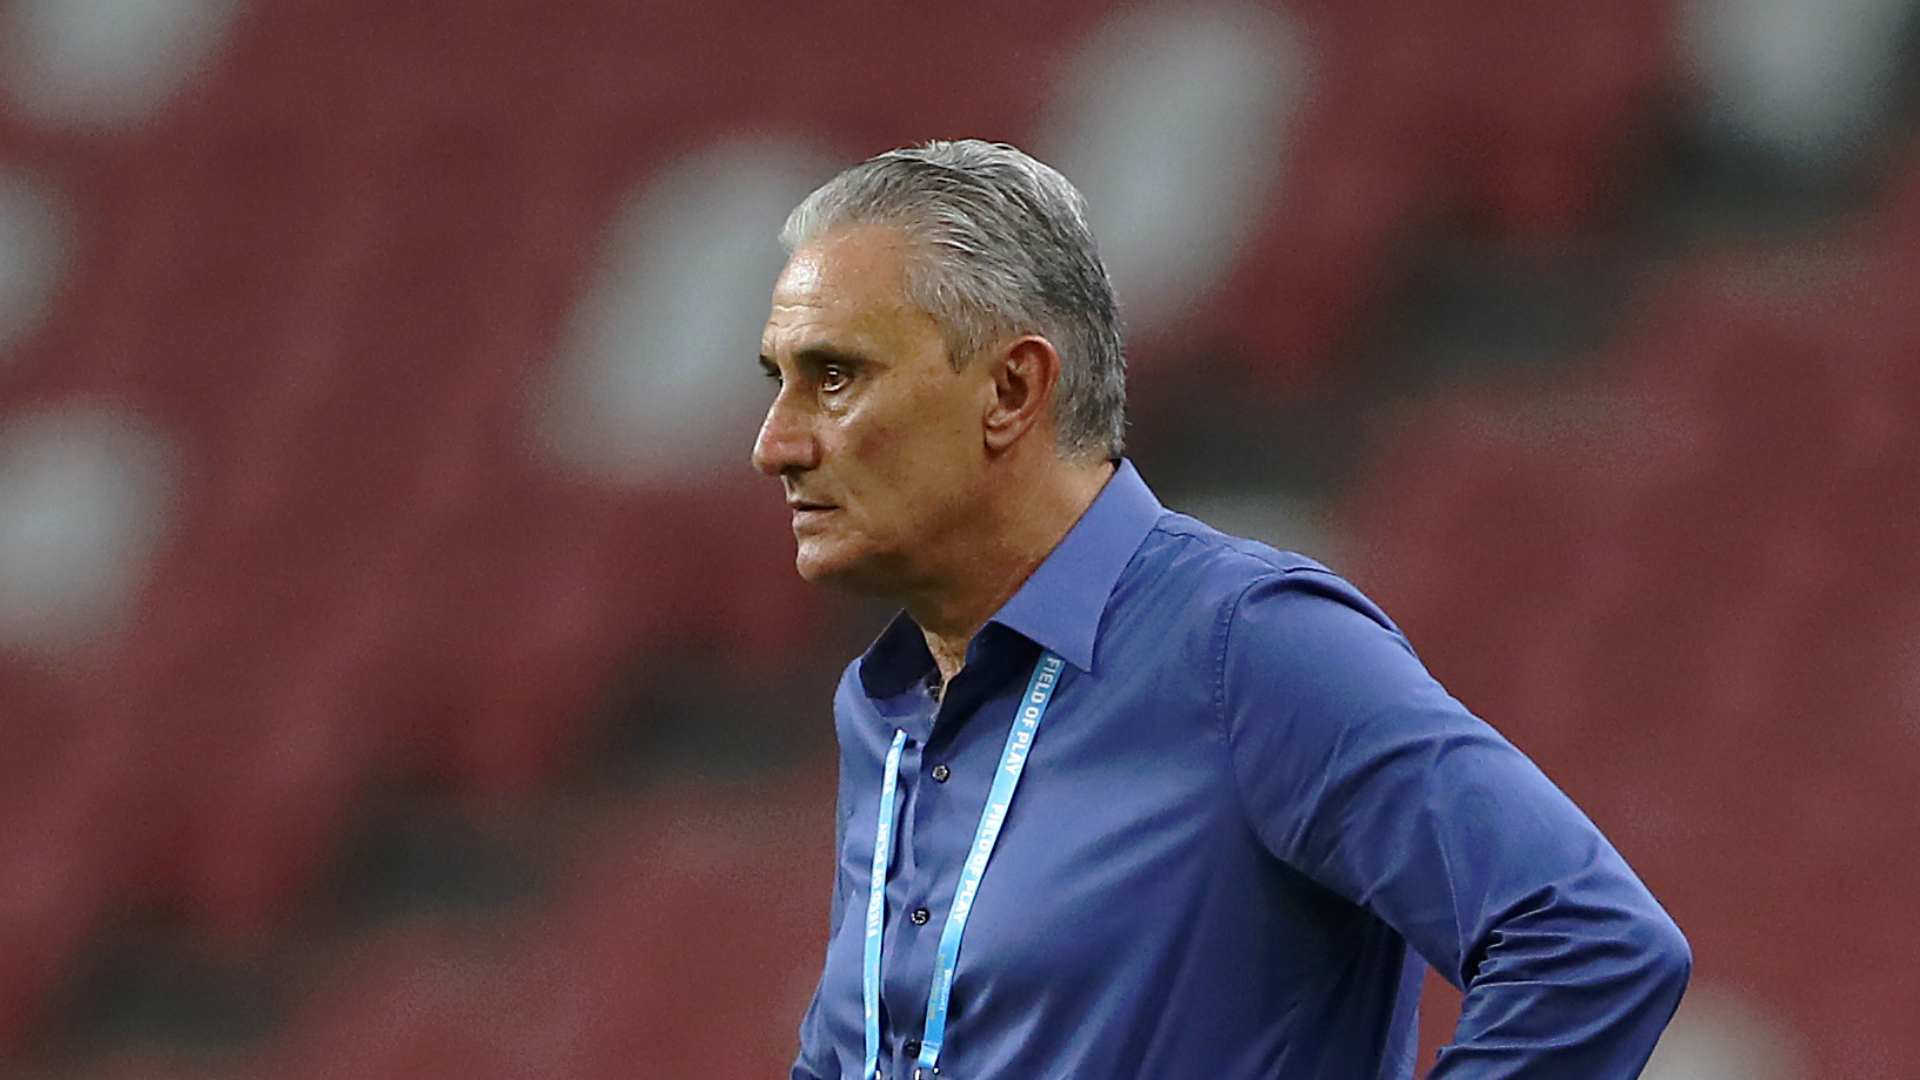 They can give more than this - Tite admits Brazil players are struggling to perform